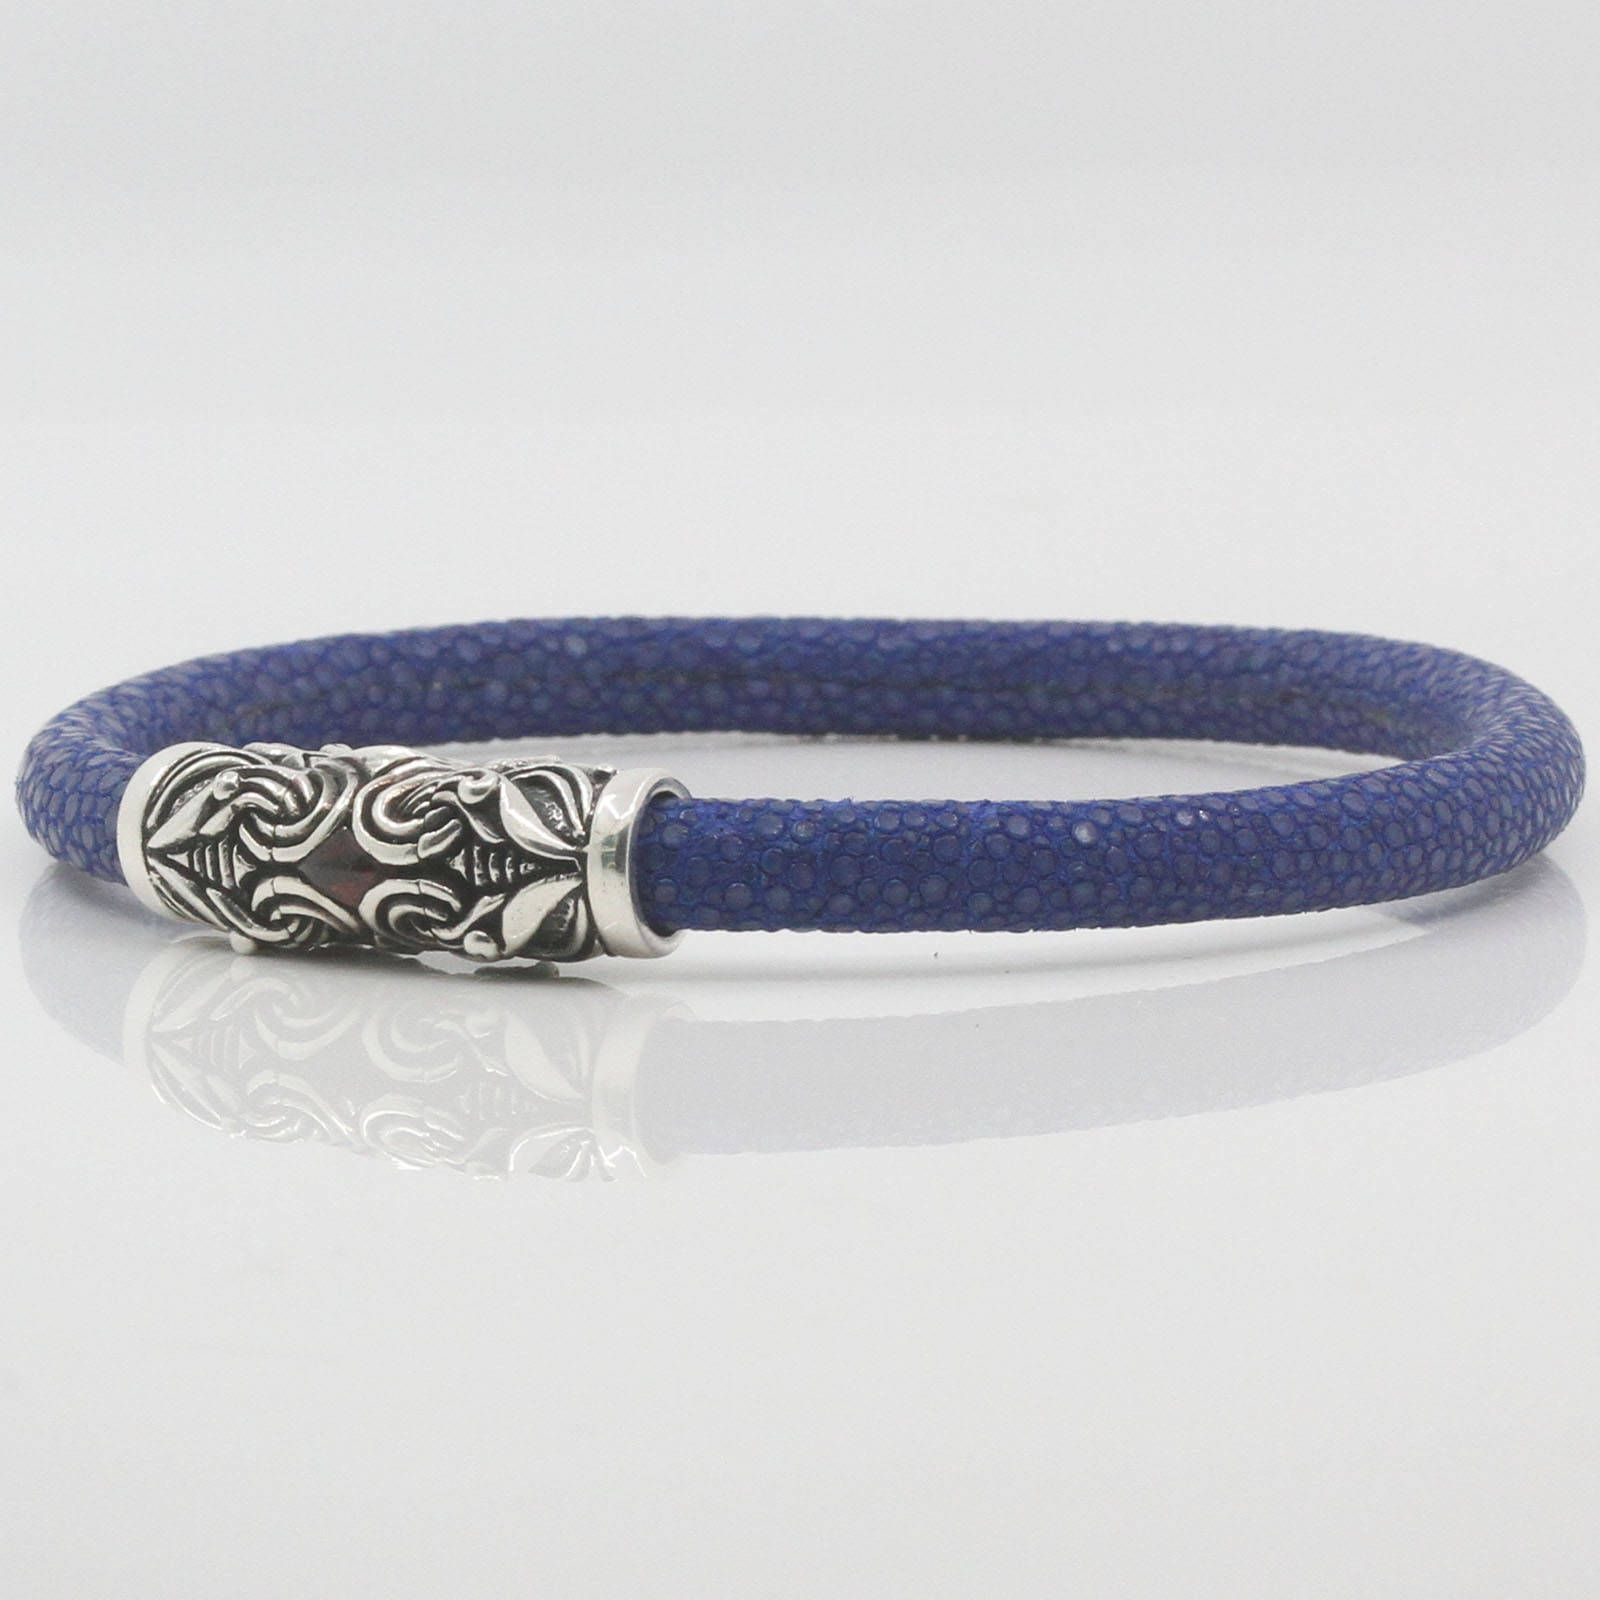 Genuine Stingray Leather Bracelet Sterling Silver 925 Magnetic Clasp Unisex  6mm